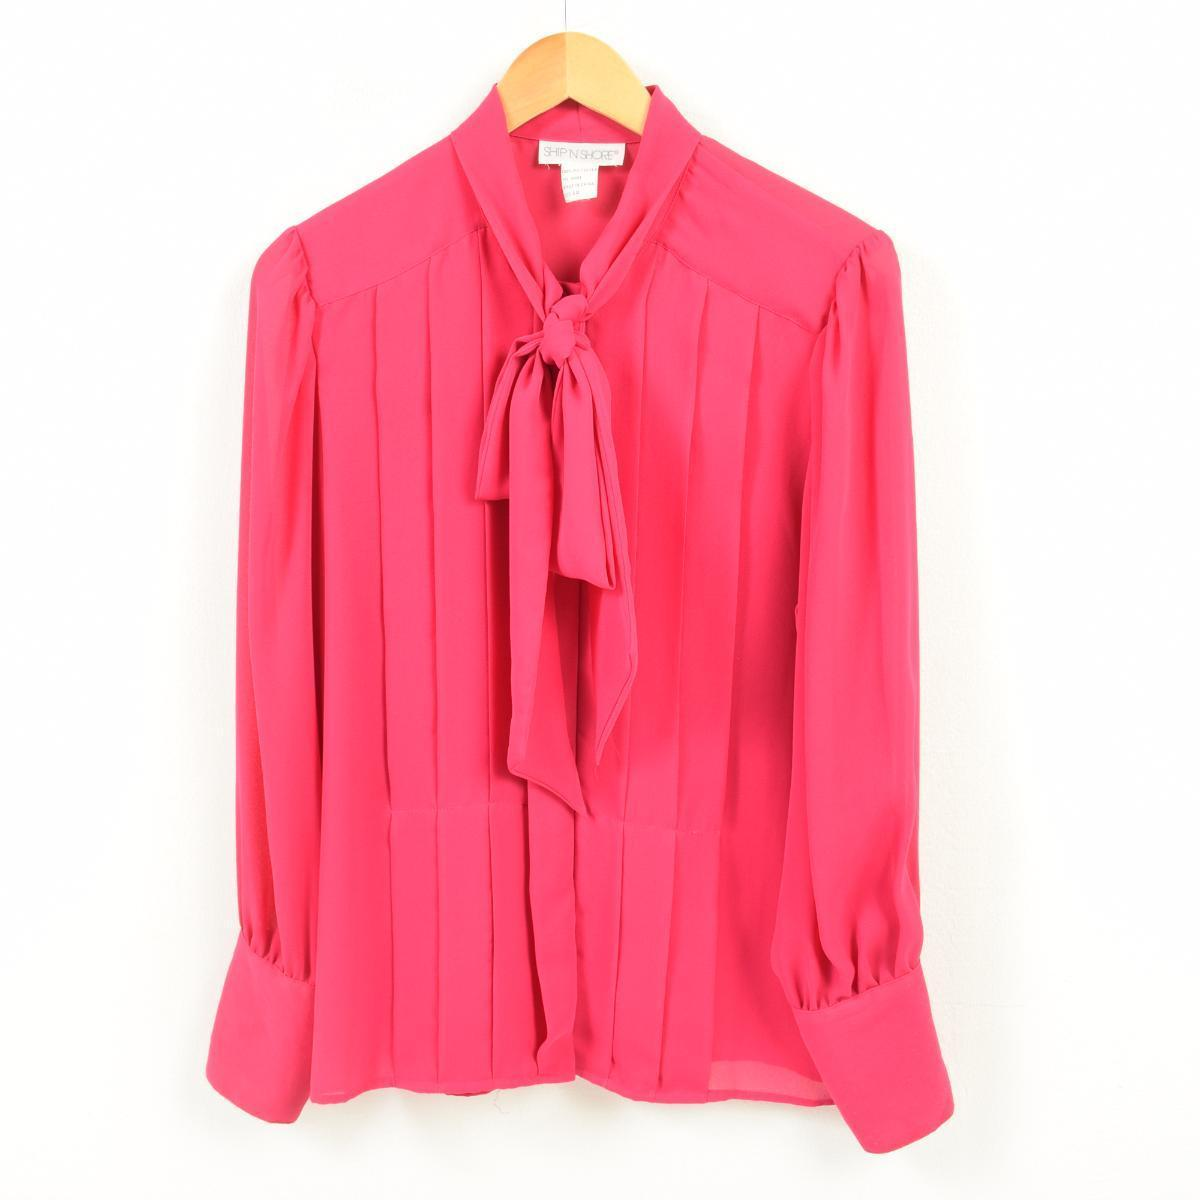 Vintage Clothing Jam Long Sleeves Bow Tie Blouse Lady S L Wan5546